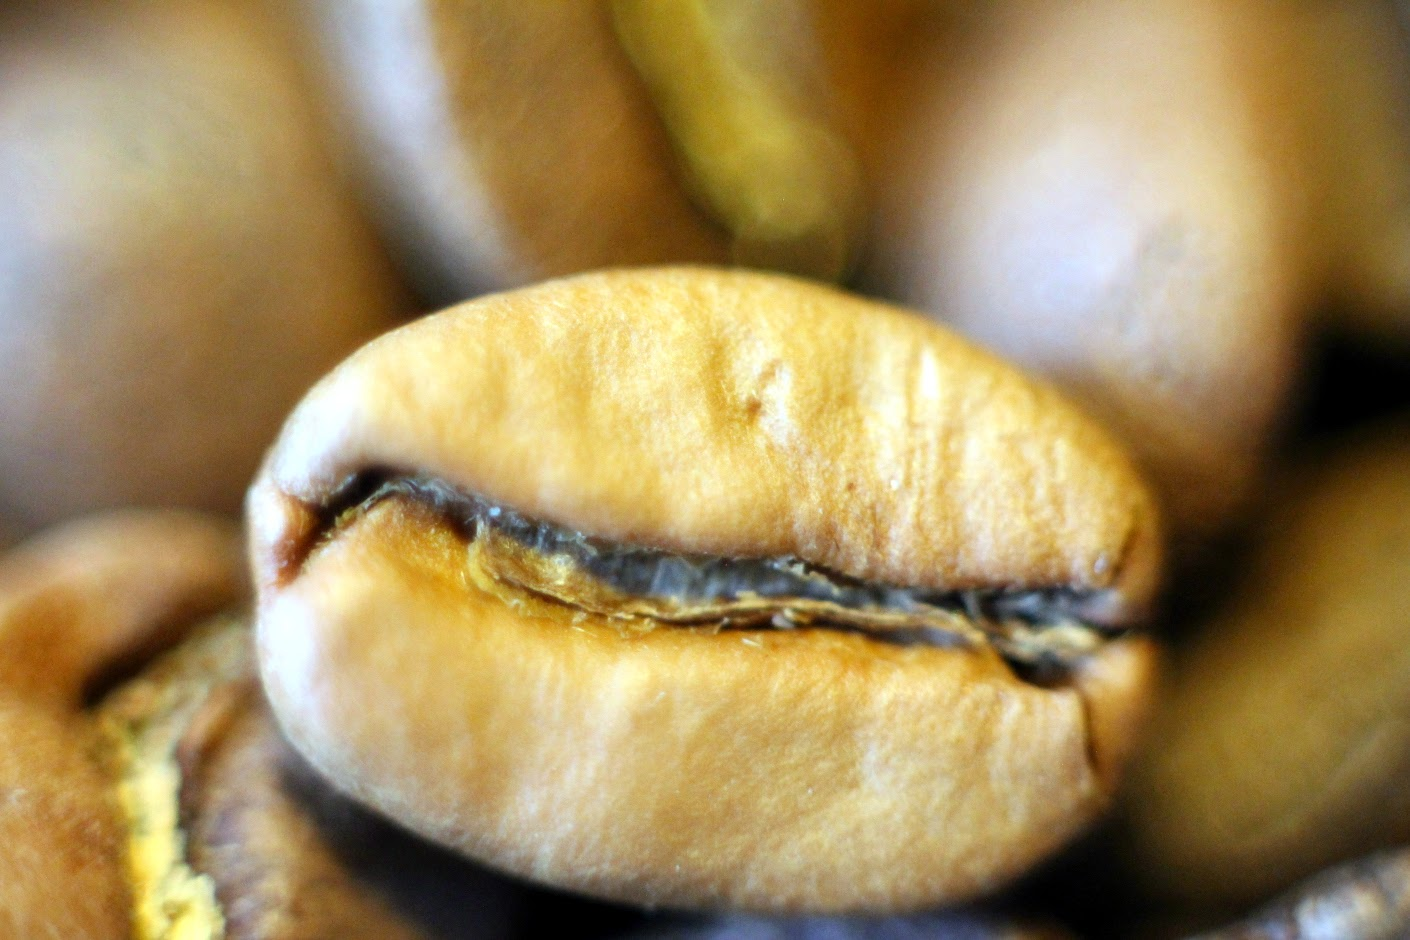 A very pale coffee bean, a quaker it appears.